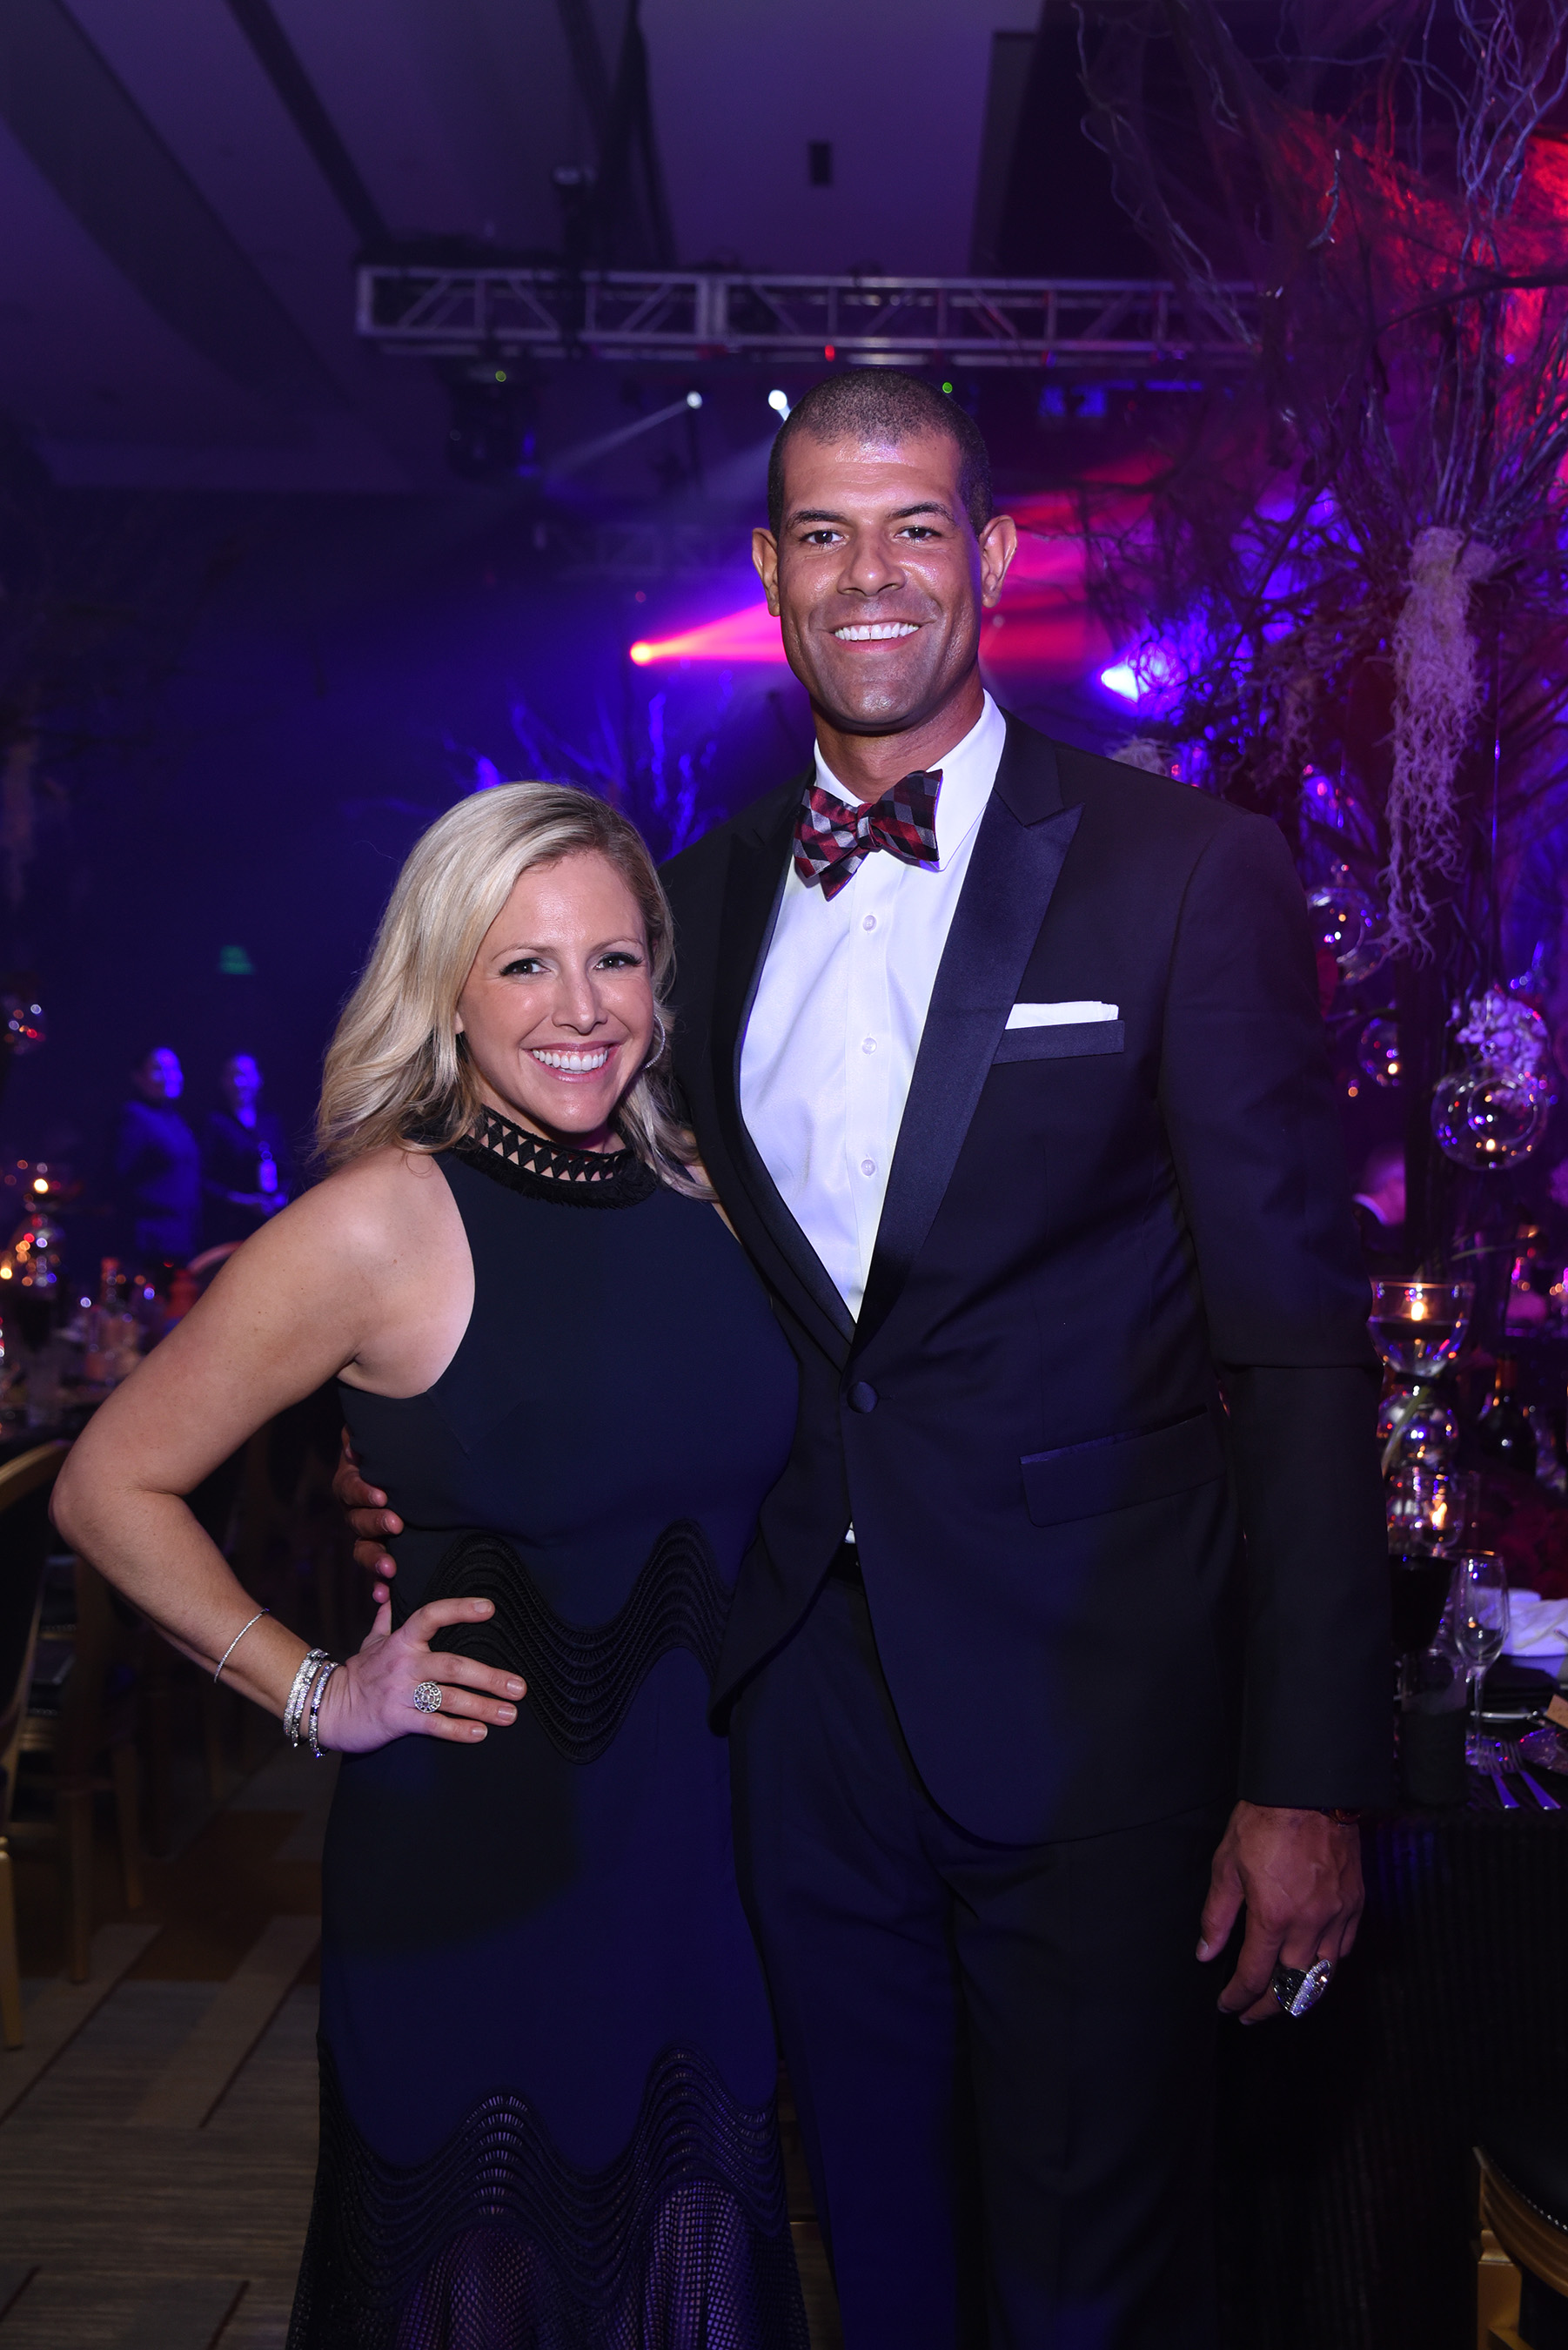 Heidi and Shane Battier